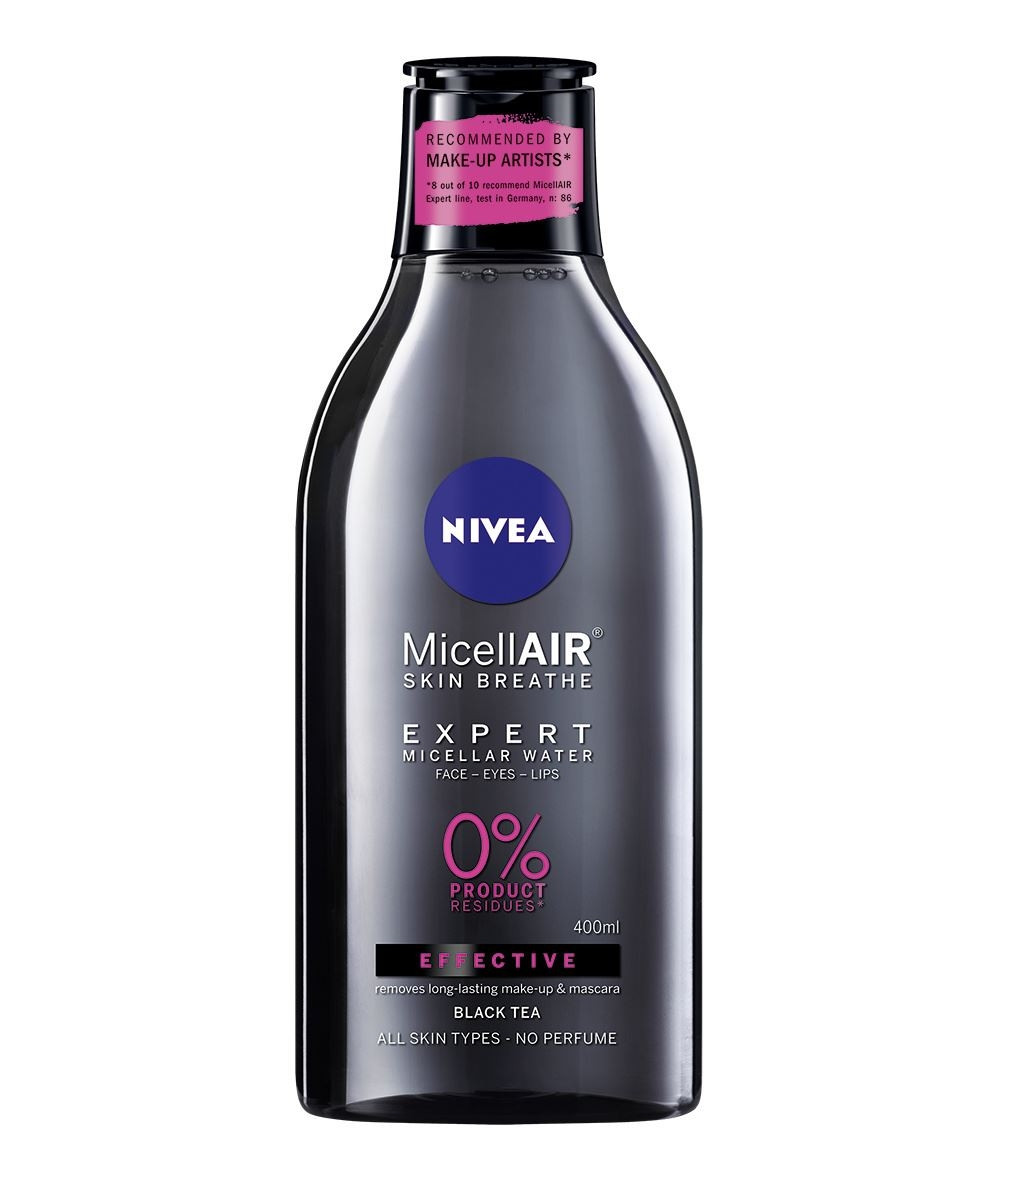 НИВЕА МИЦЕЛАР ЕКСПЕРТ Мицеларна вода за лице, очи и устни 400мл | NIVEA MICELLAIR EXPERT Micellar water for face, eyes and lips 400ml